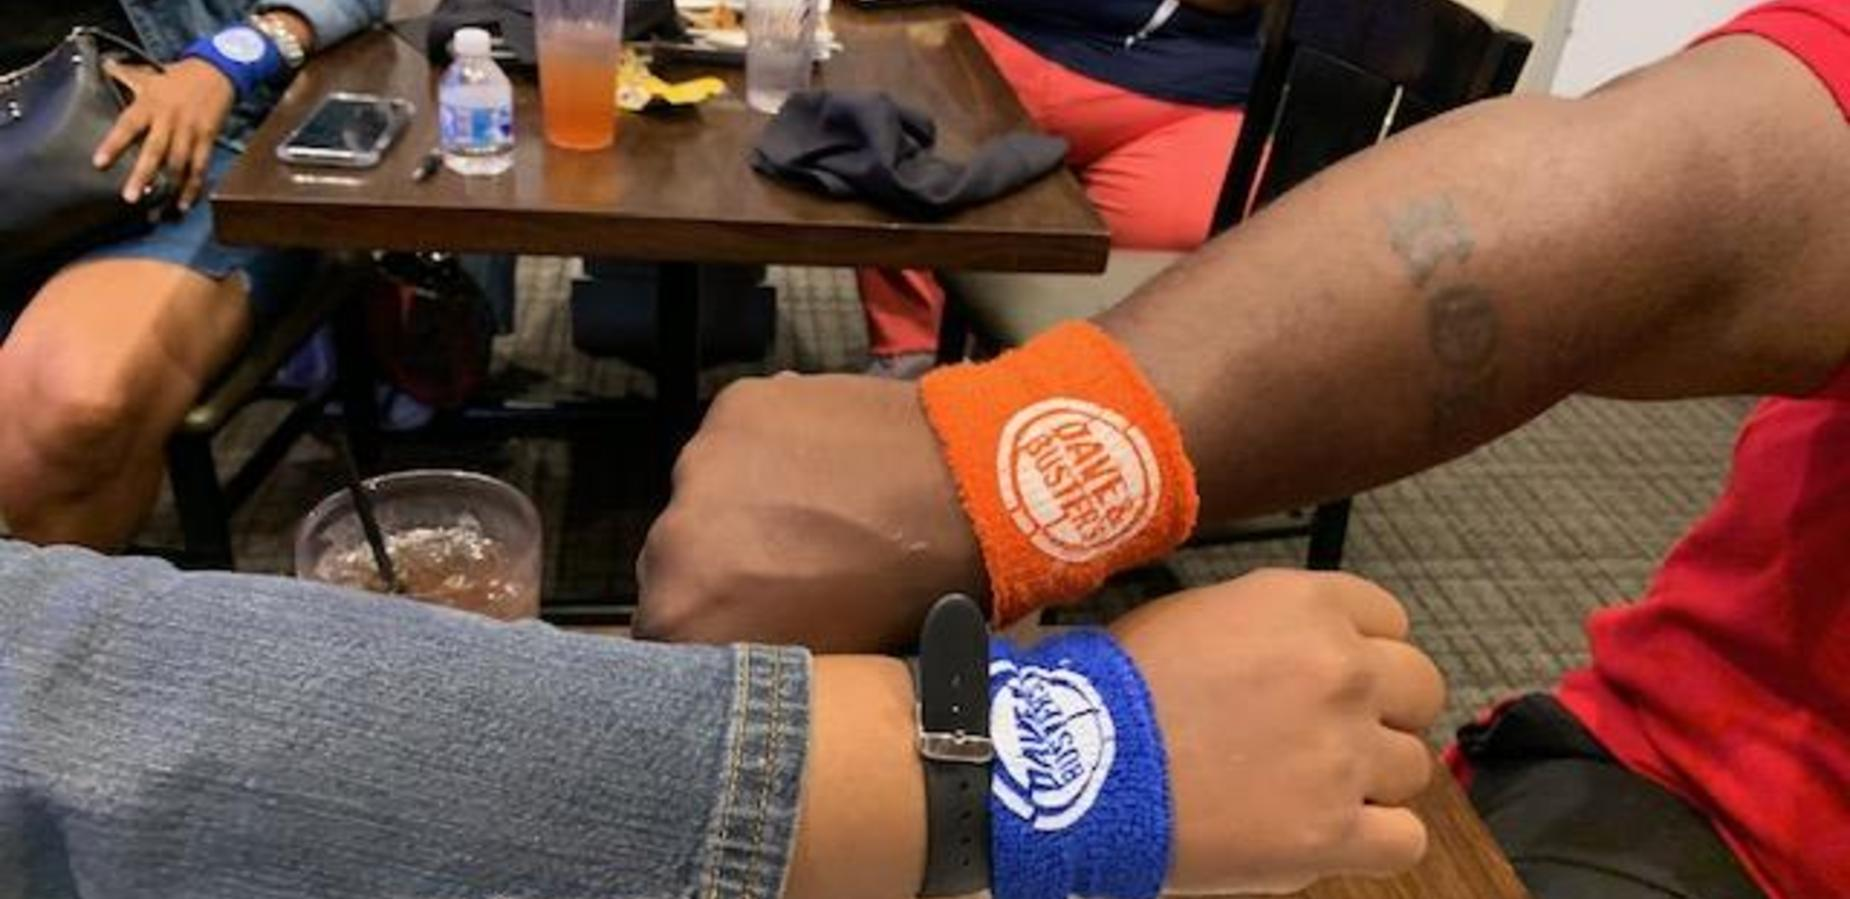 Dave & Buster's wrist bands